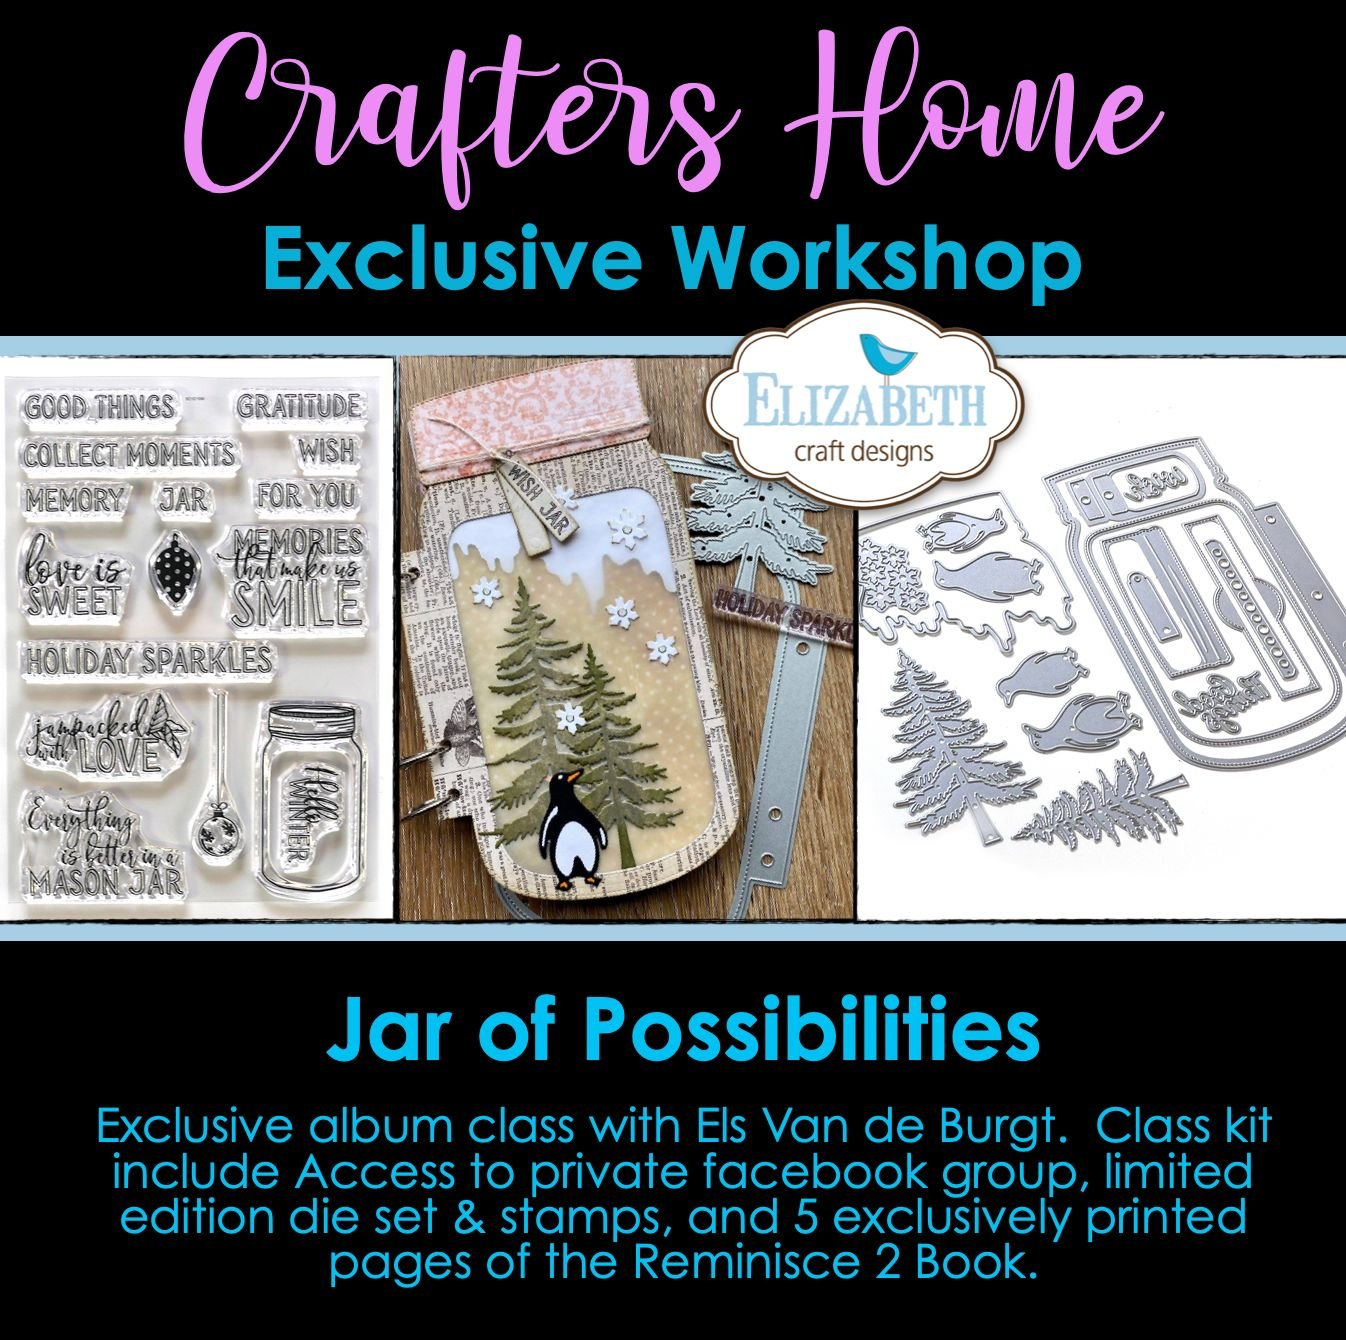 ONLINE CLASS EXCLUSIVE:  Jar of Possibilities with Elizabeth Crafts